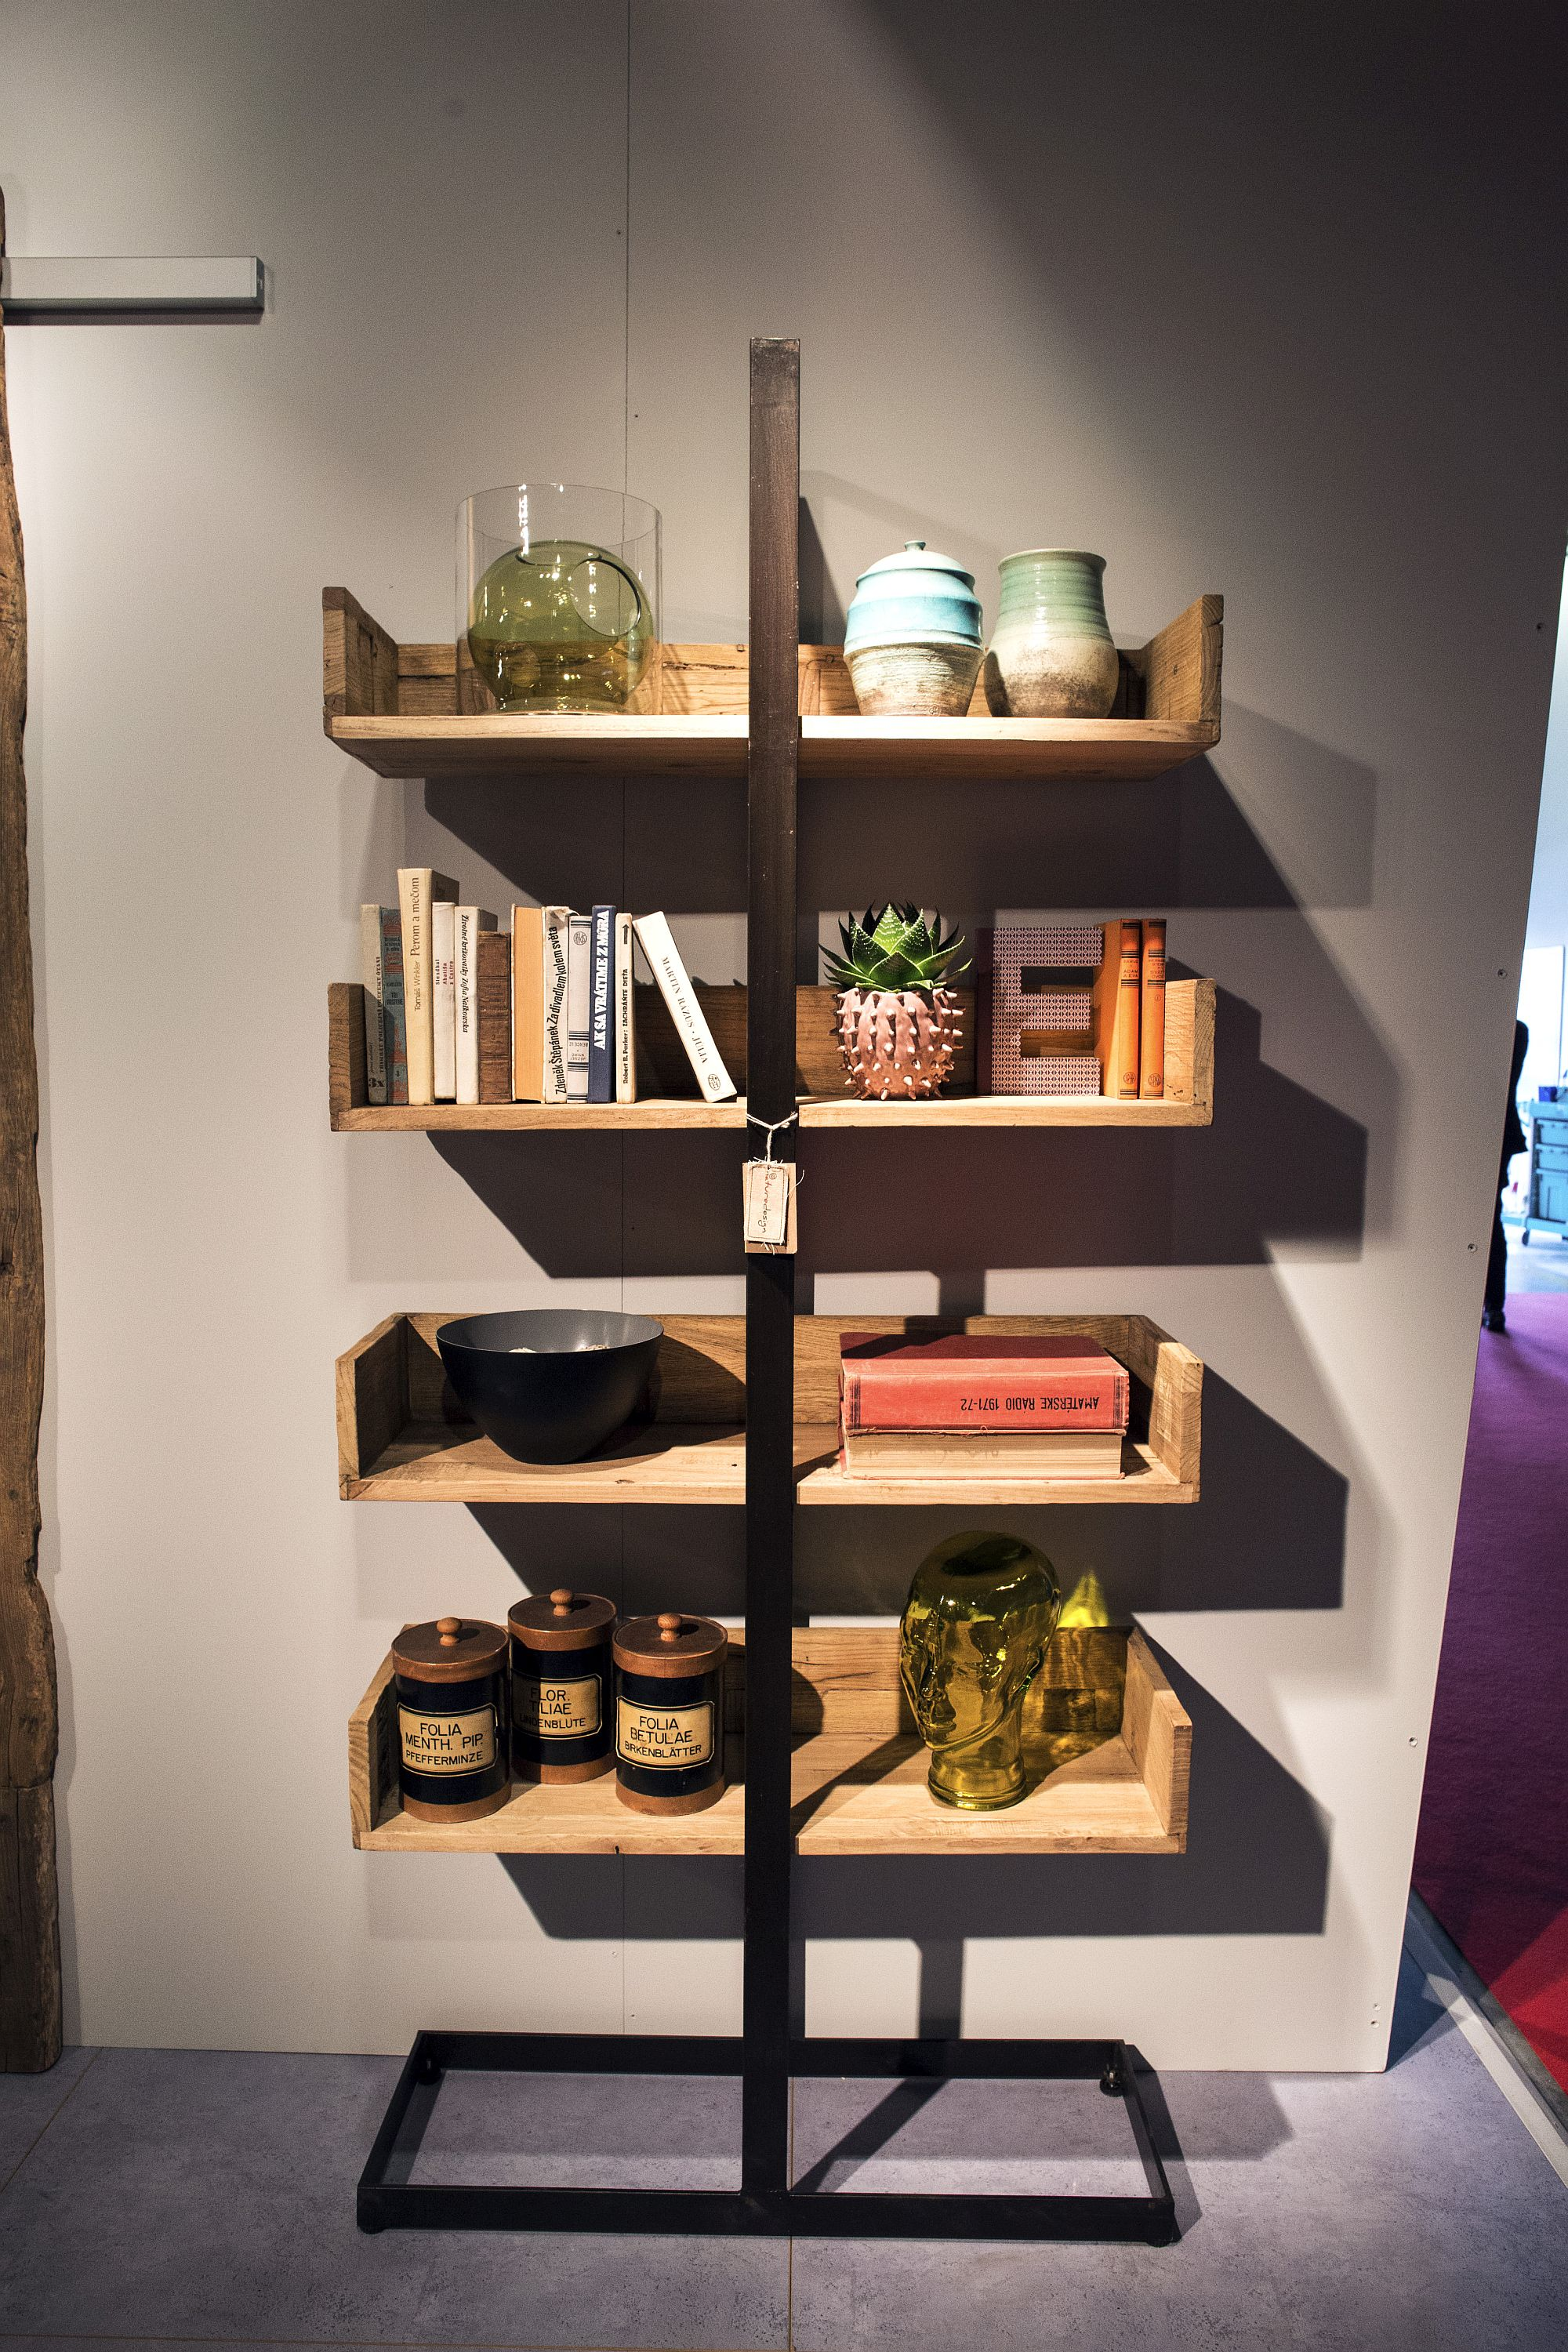 Unique Wooden Shelves ~ Open wooden shelves bringing modularity and decorating